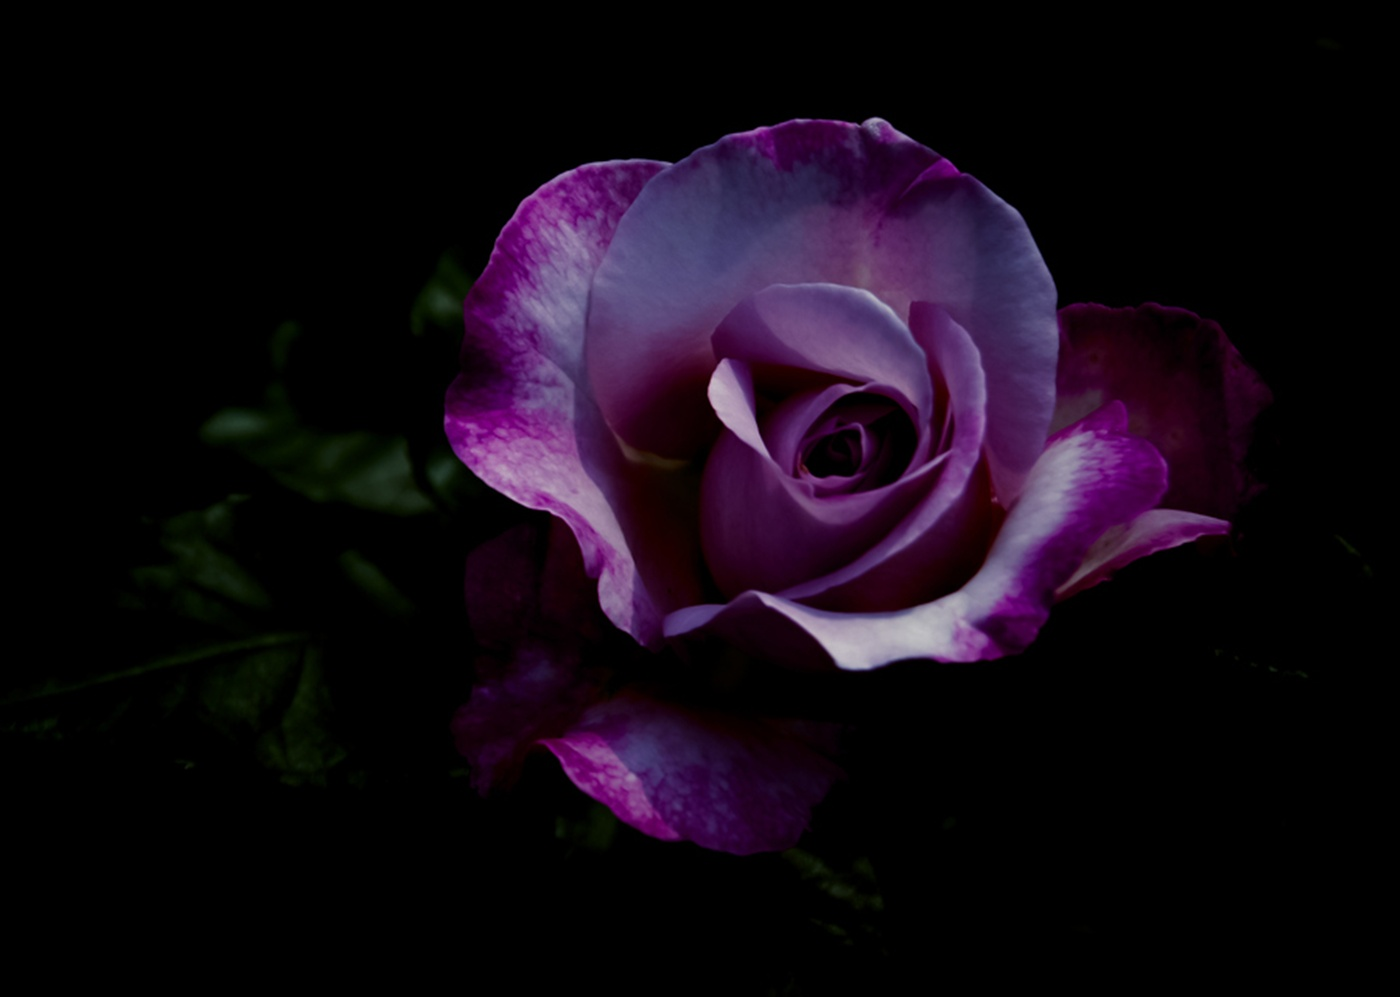 Violet Rose Wallpaper - WallpaperSafari